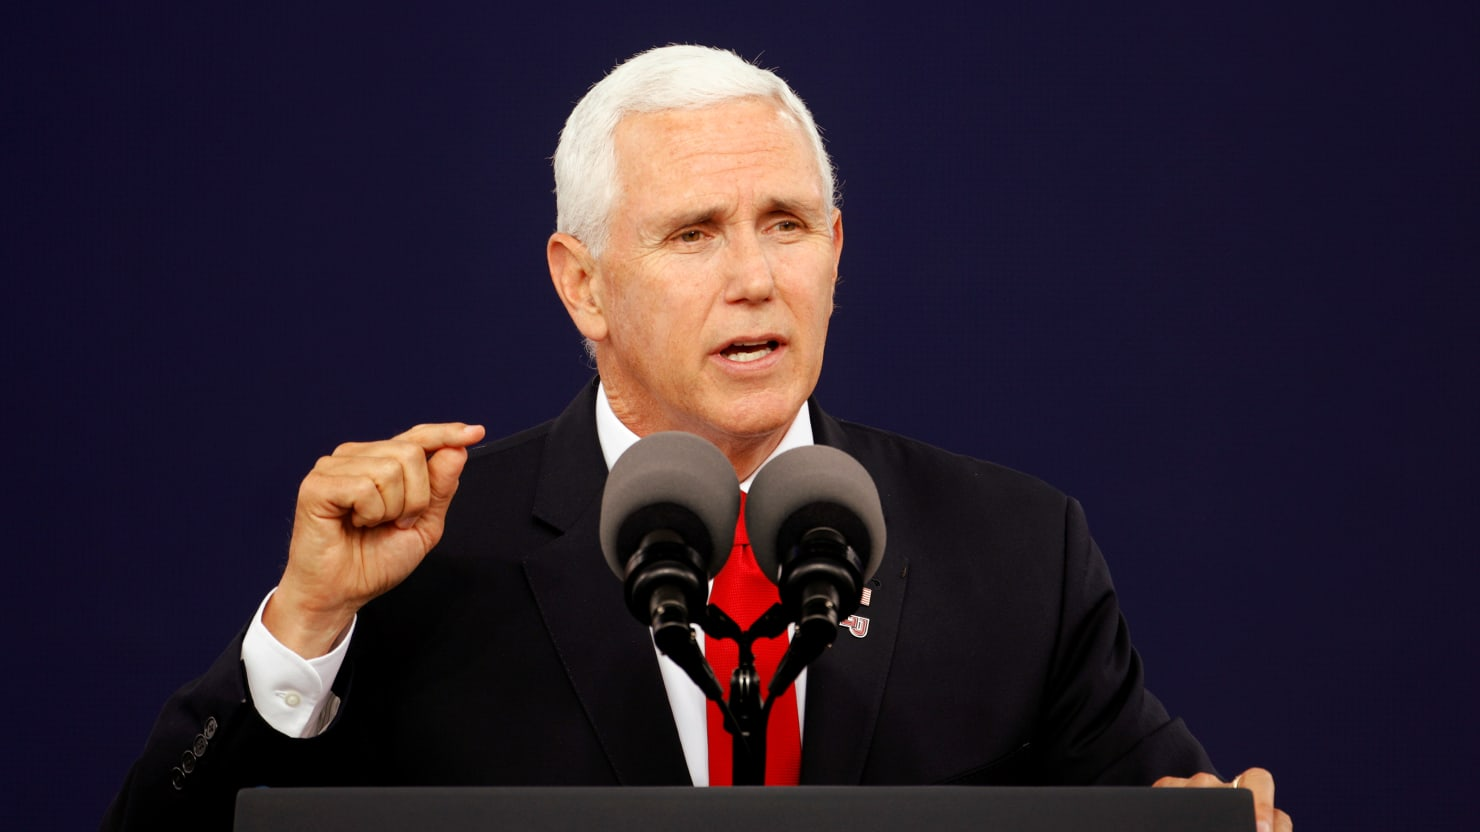 Vice President Mike Pence to Graduates: Prepare to Be 'Shunned' for Being Christian